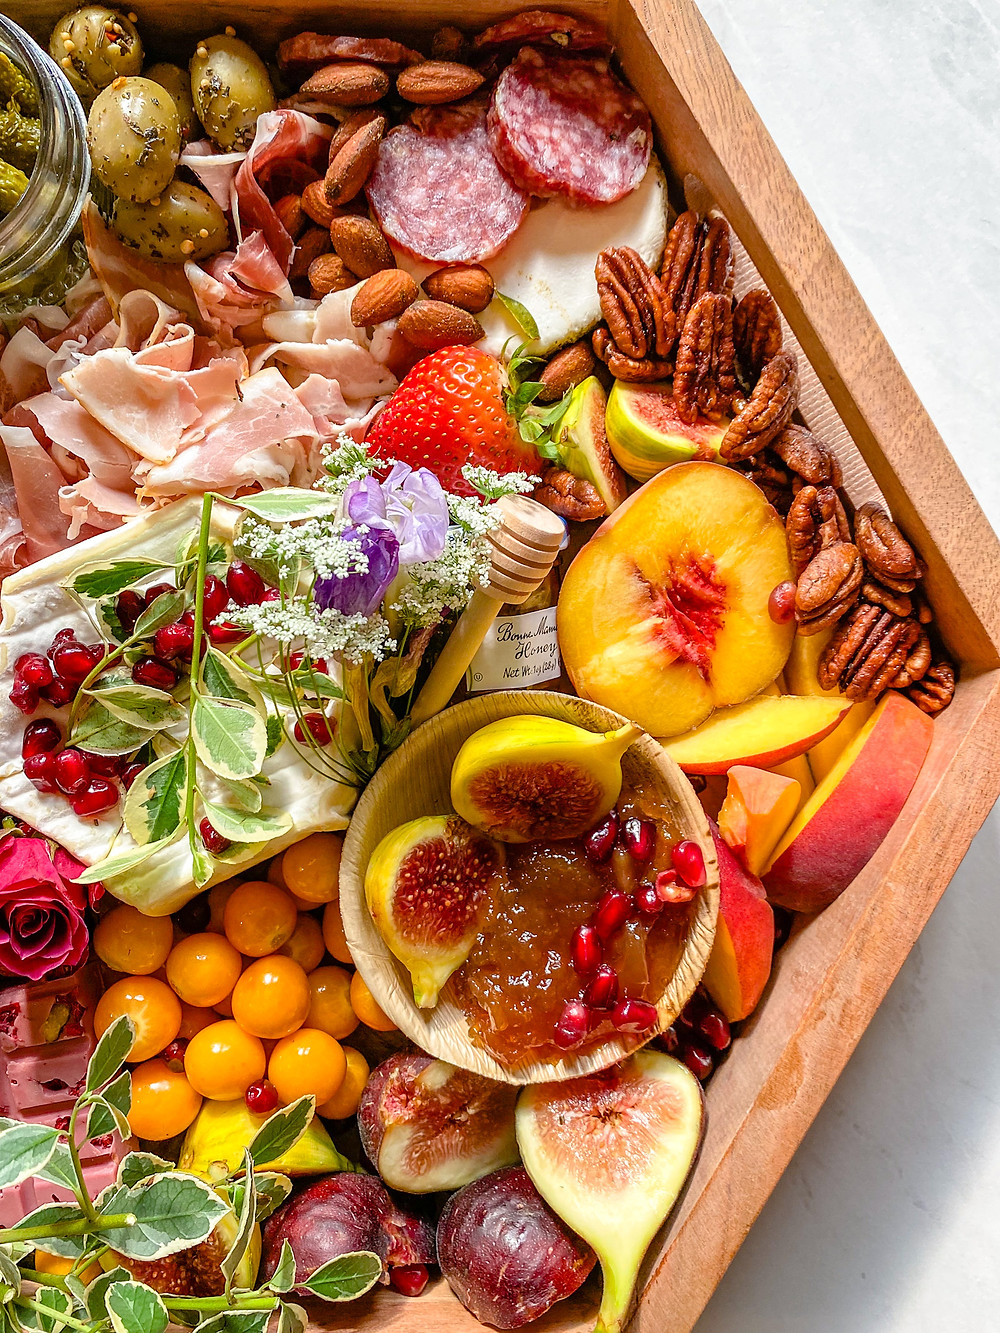 A hexagonal high walled wooden grazing board covered in cheese, meats, fruit, jams, and a spray of flowers